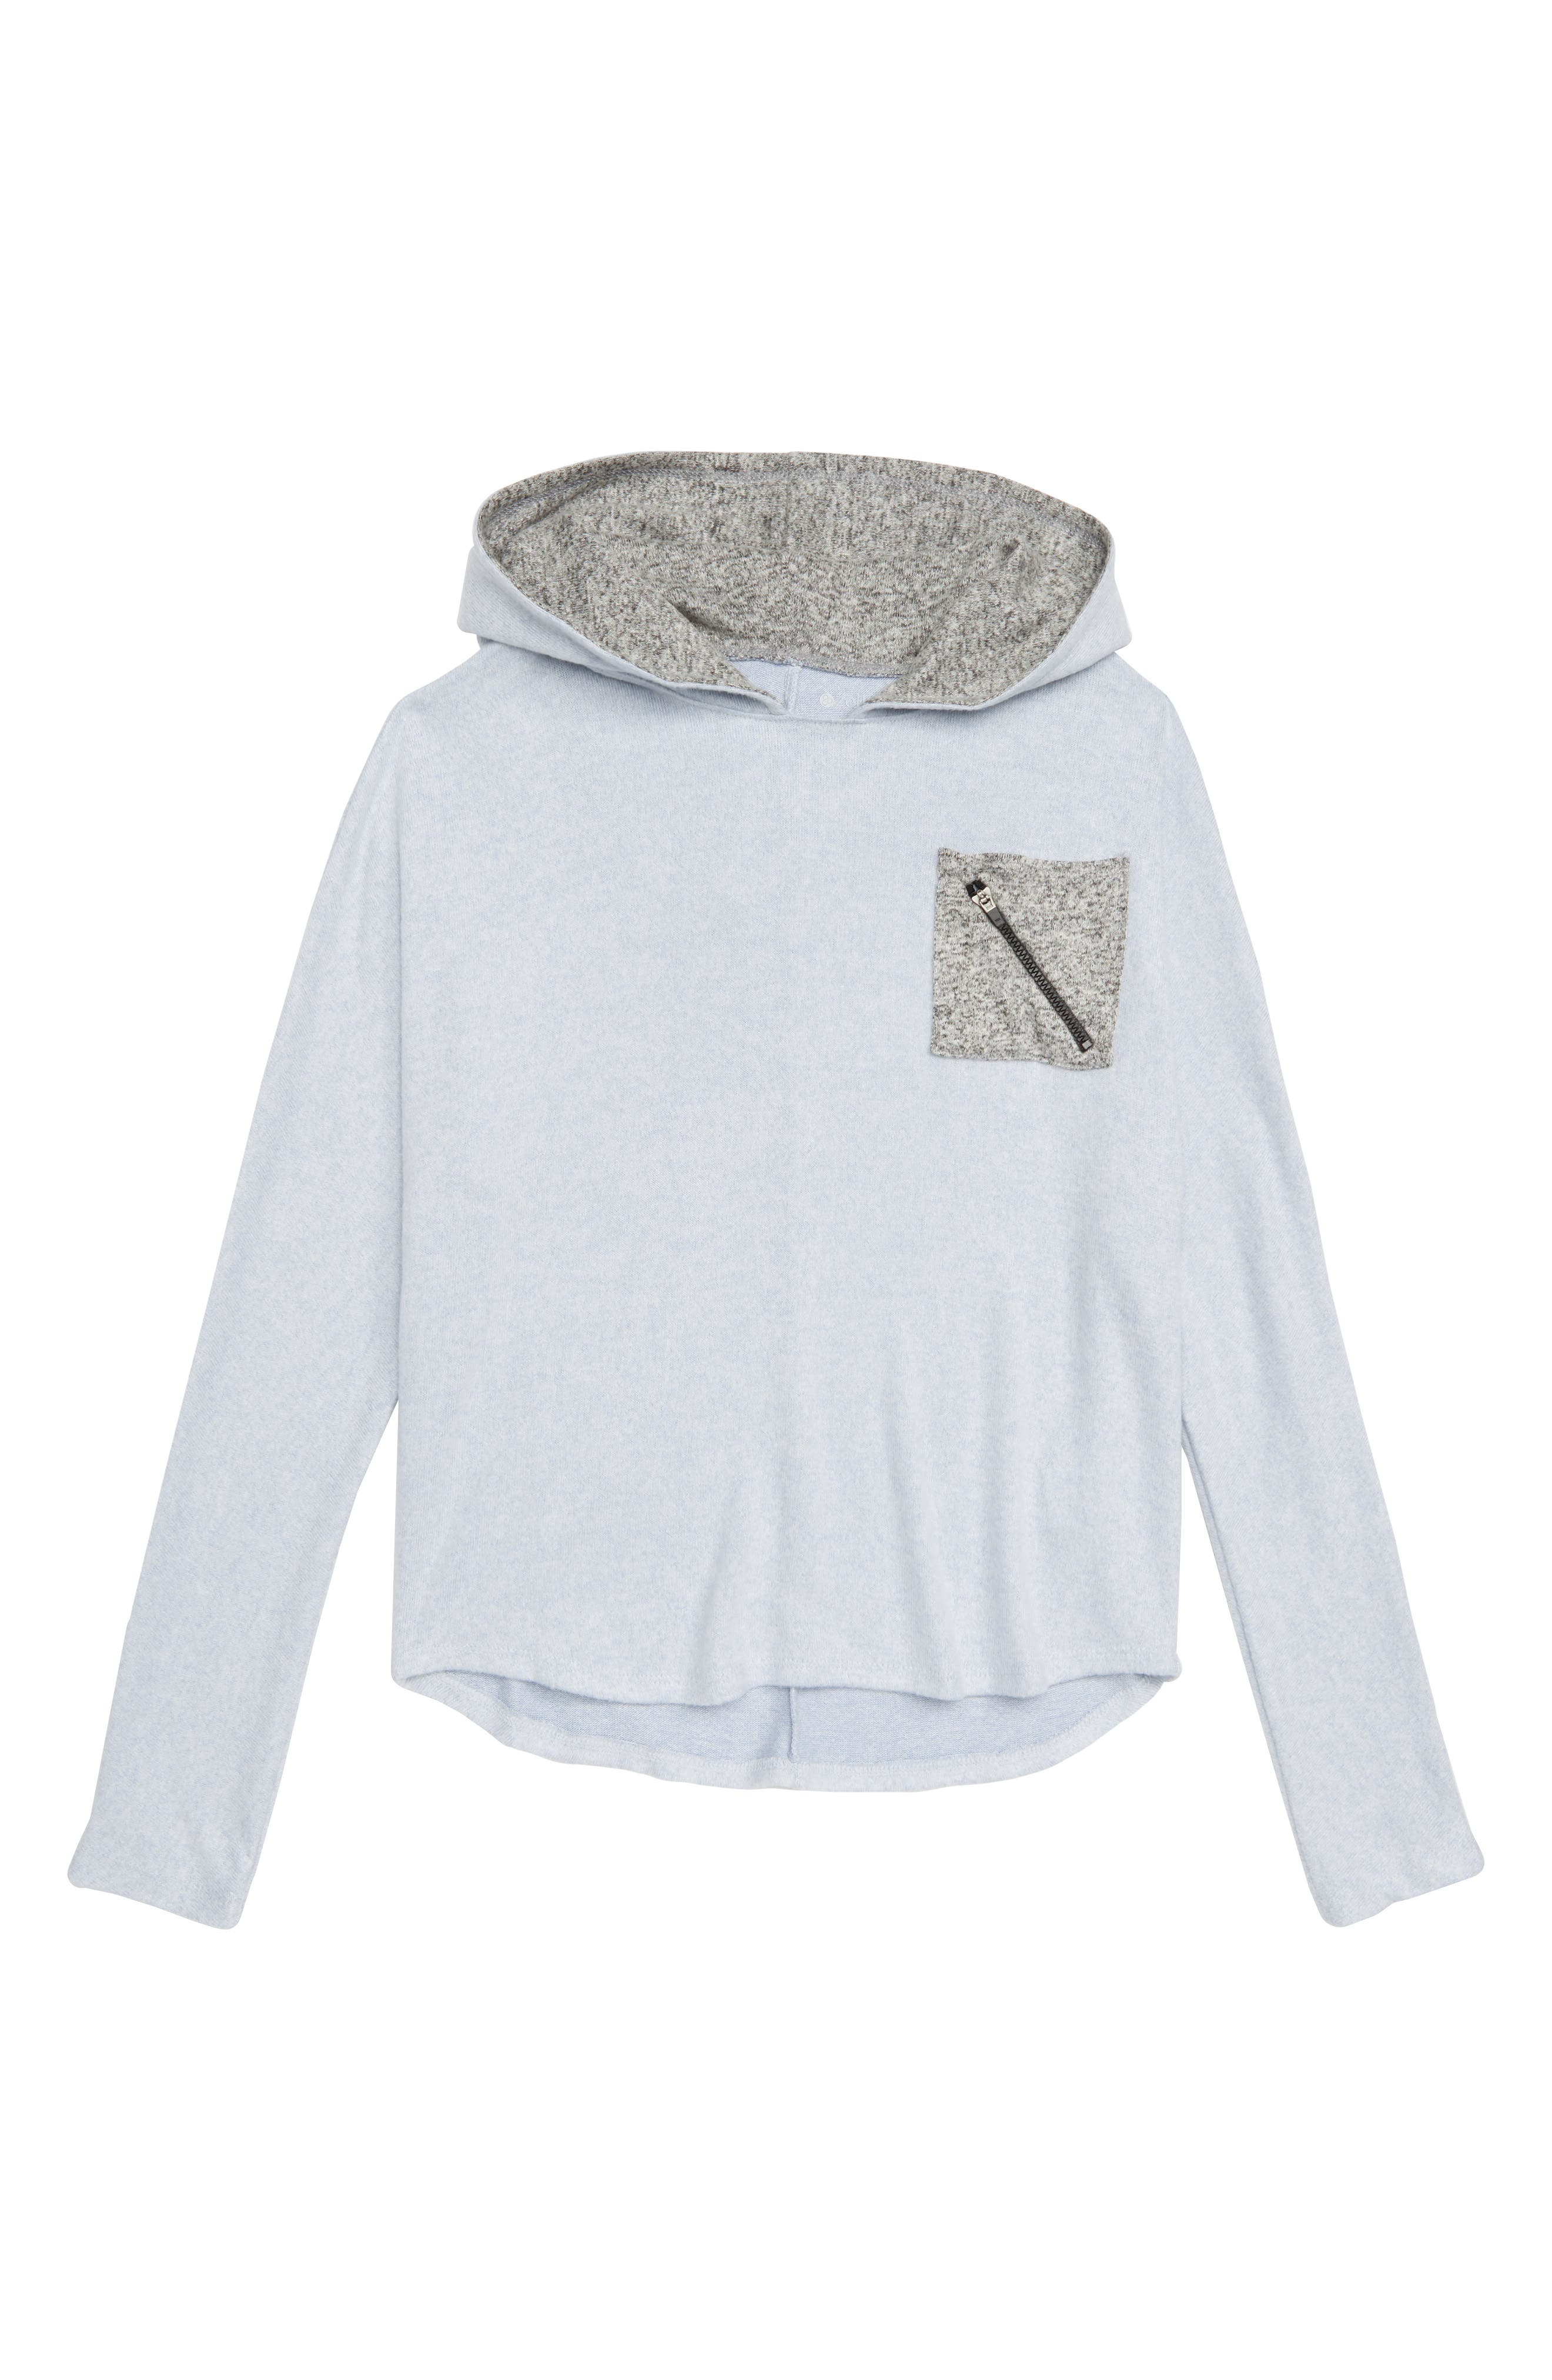 Contrast Pocket Hooded Pullover,                             Main thumbnail 1, color,                             420